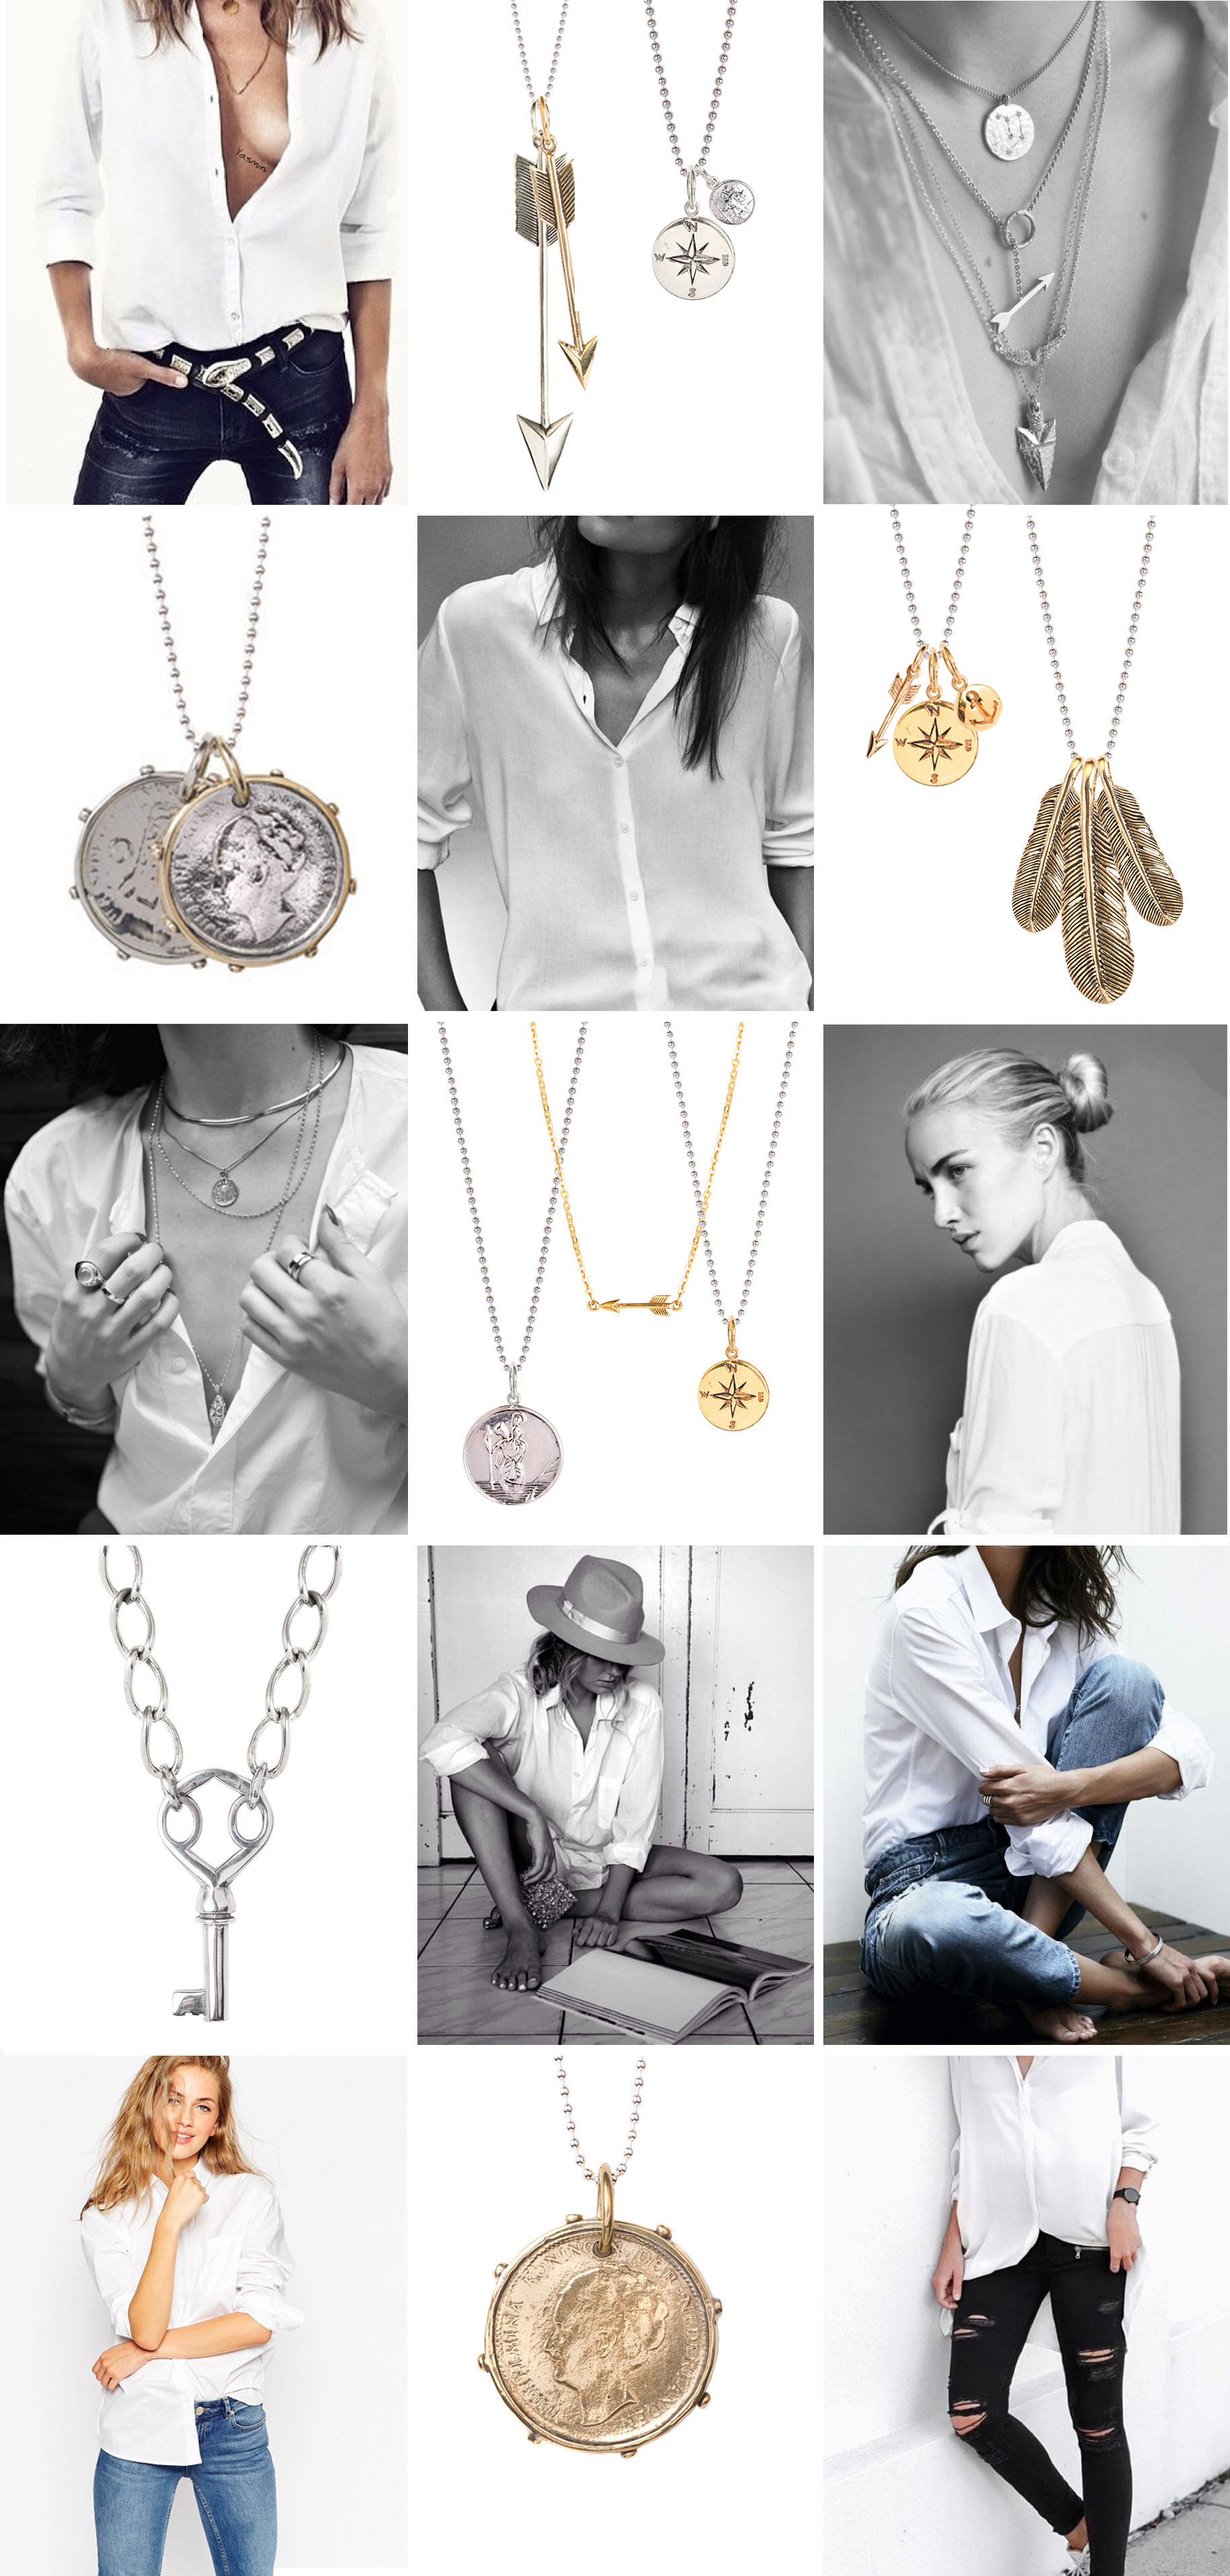 White Shirt Jewellery Ideas